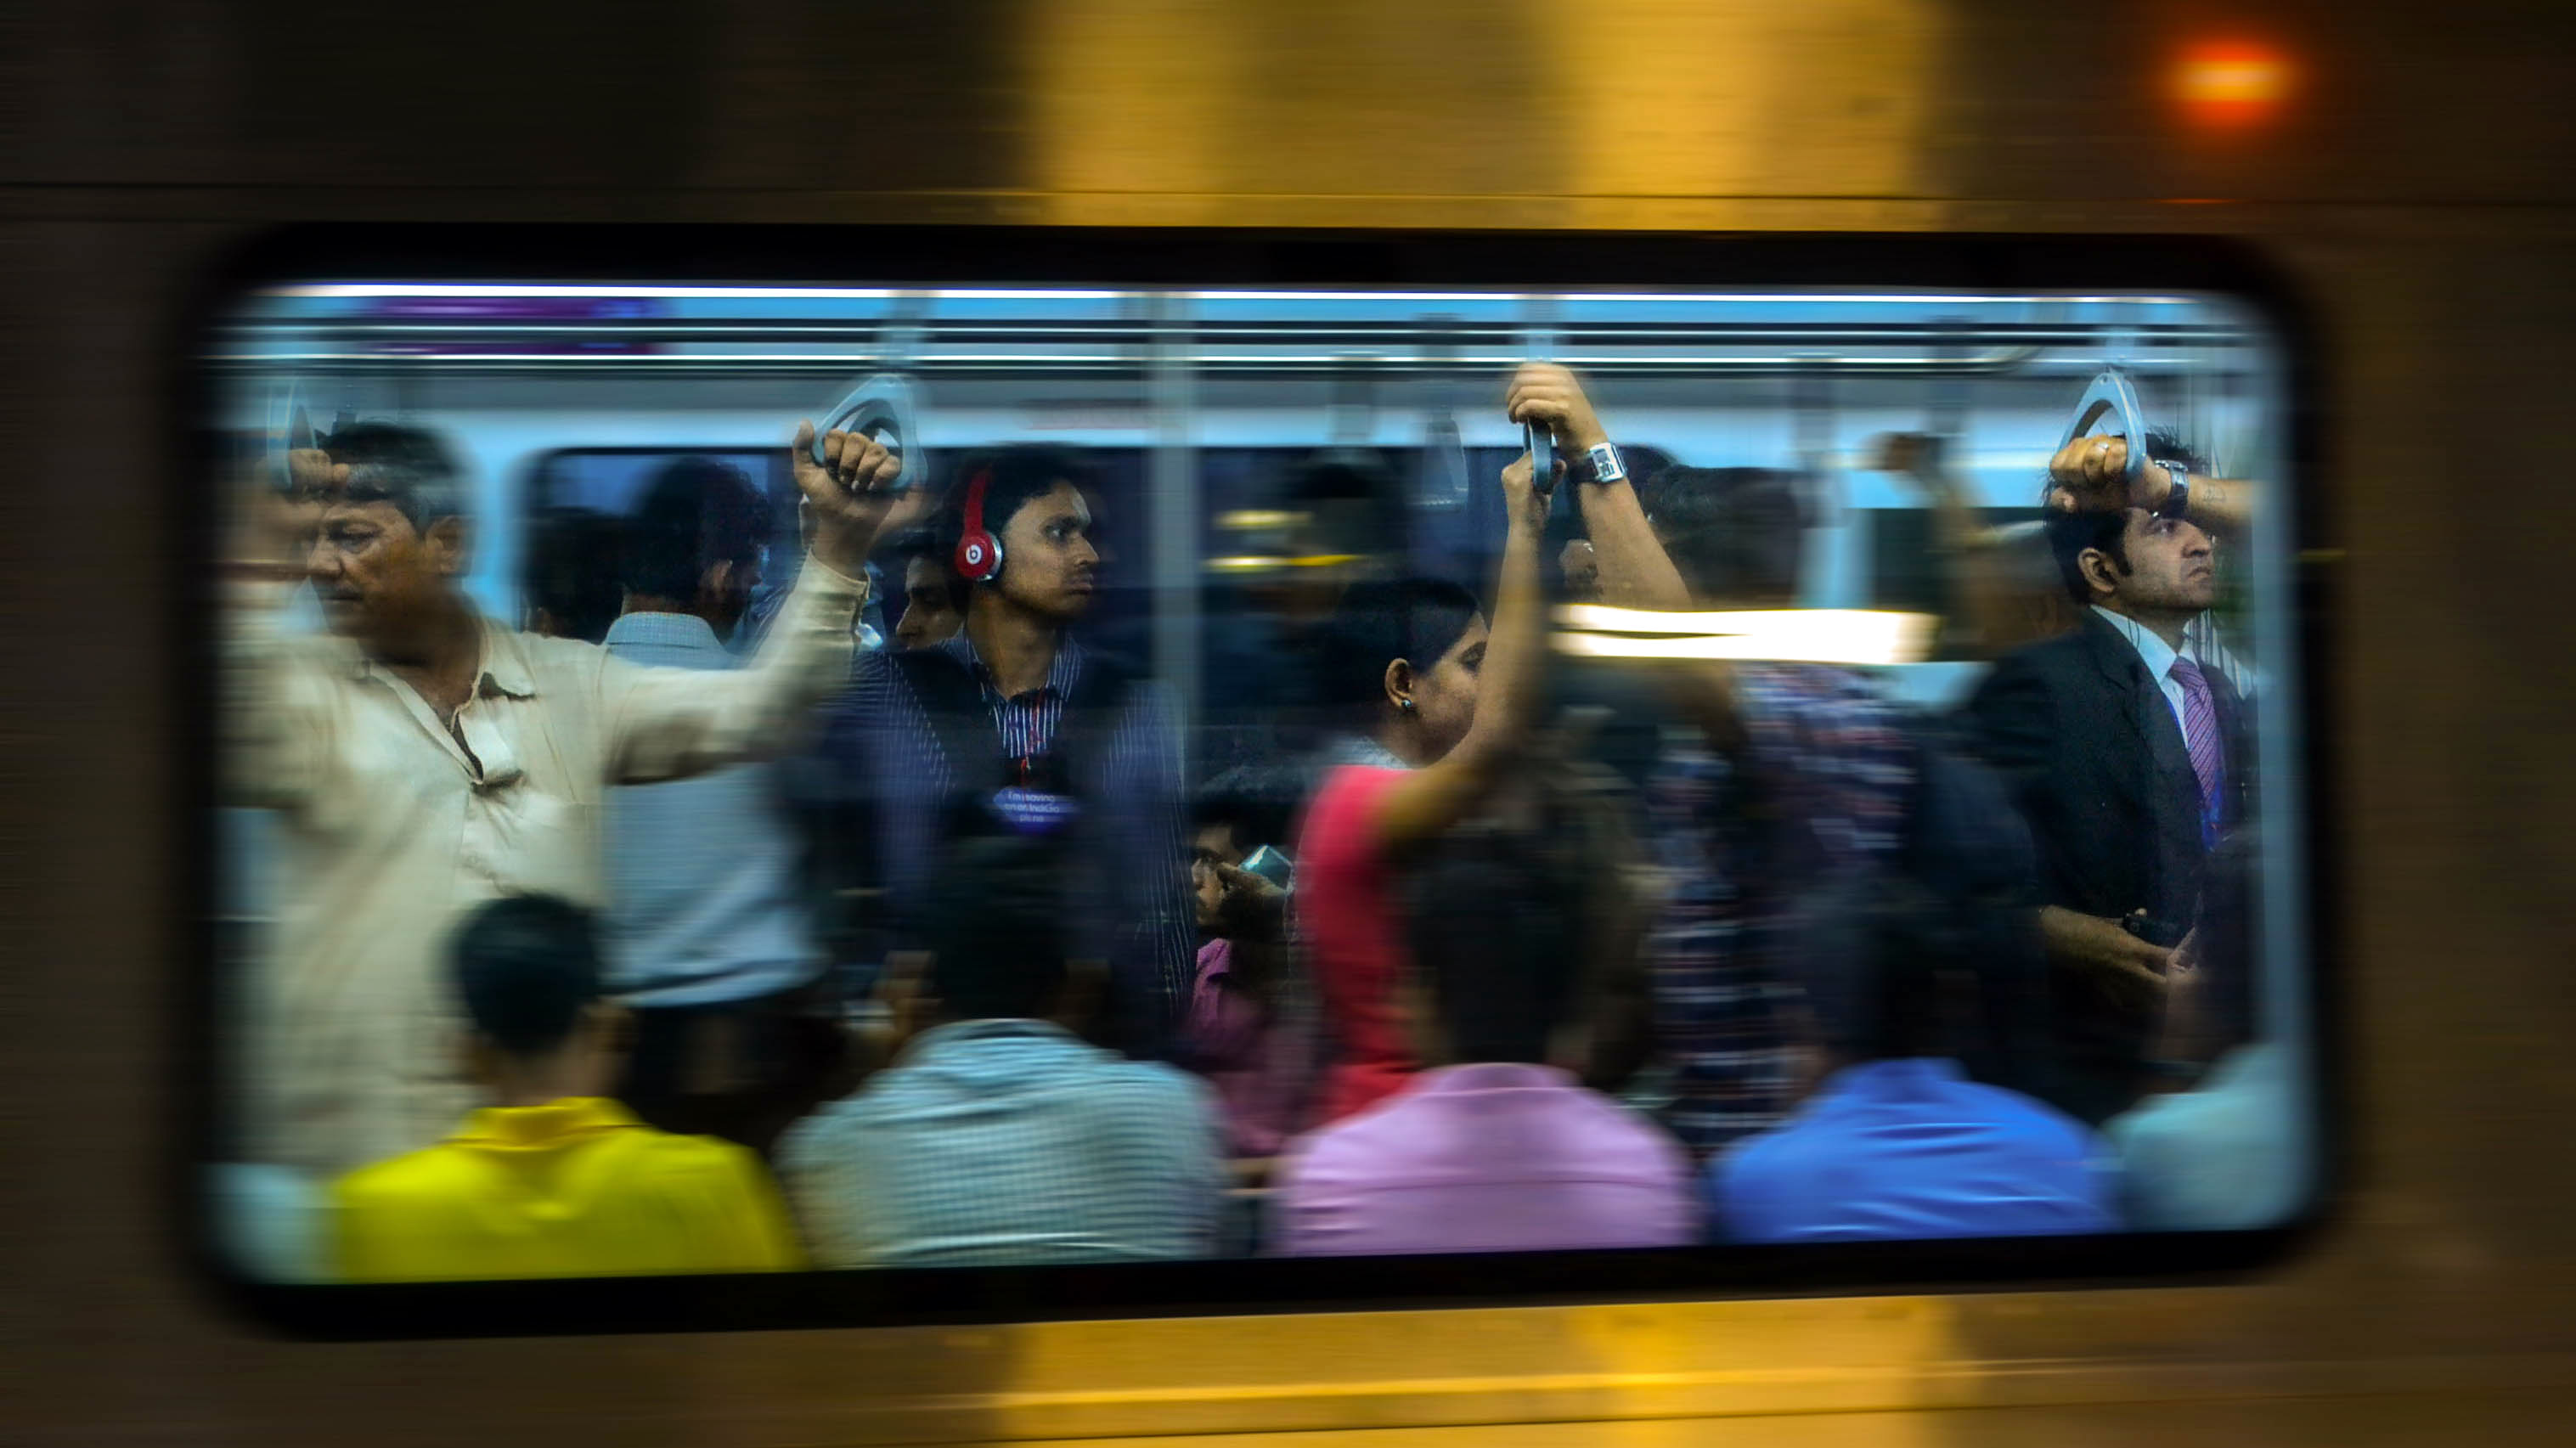 Commuters in Mumbai's subway, India